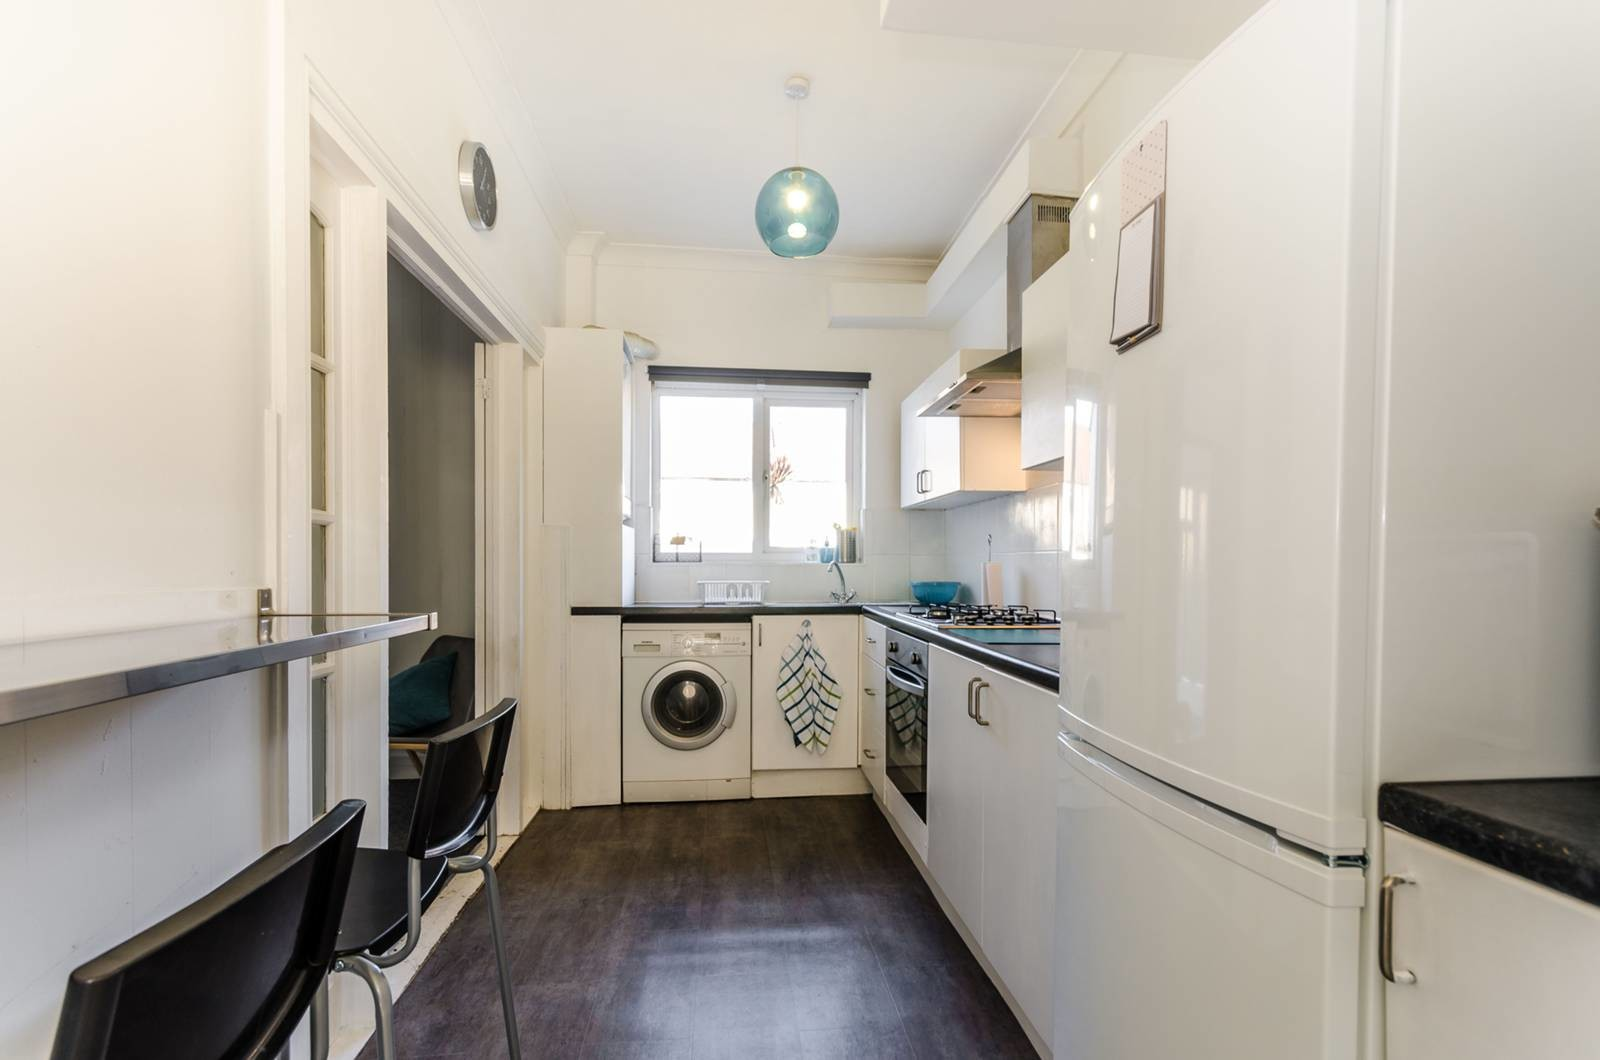 Bright Bedroom House Boasts A Modern Finish Throughout The Property With A Contemporary Kitchen And Large Garden